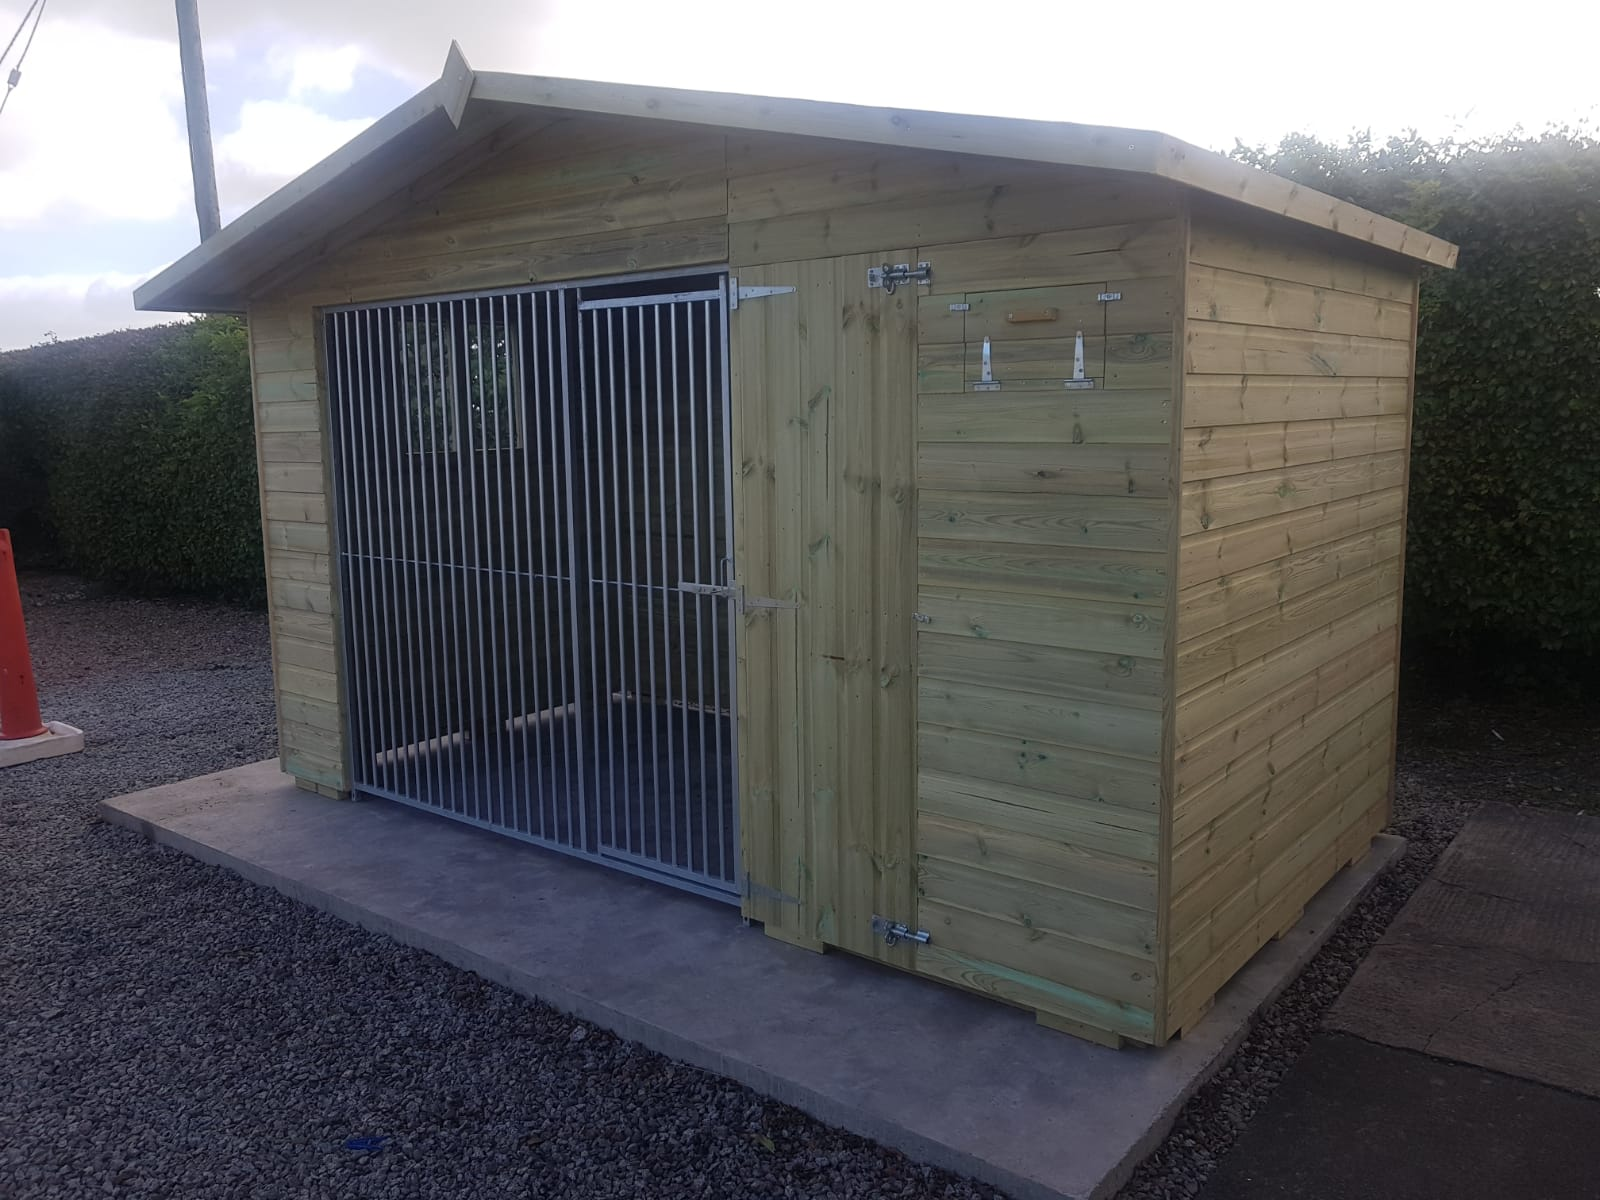 The Bramhall 12ft Wide x 6ft Deep Dog Kennel